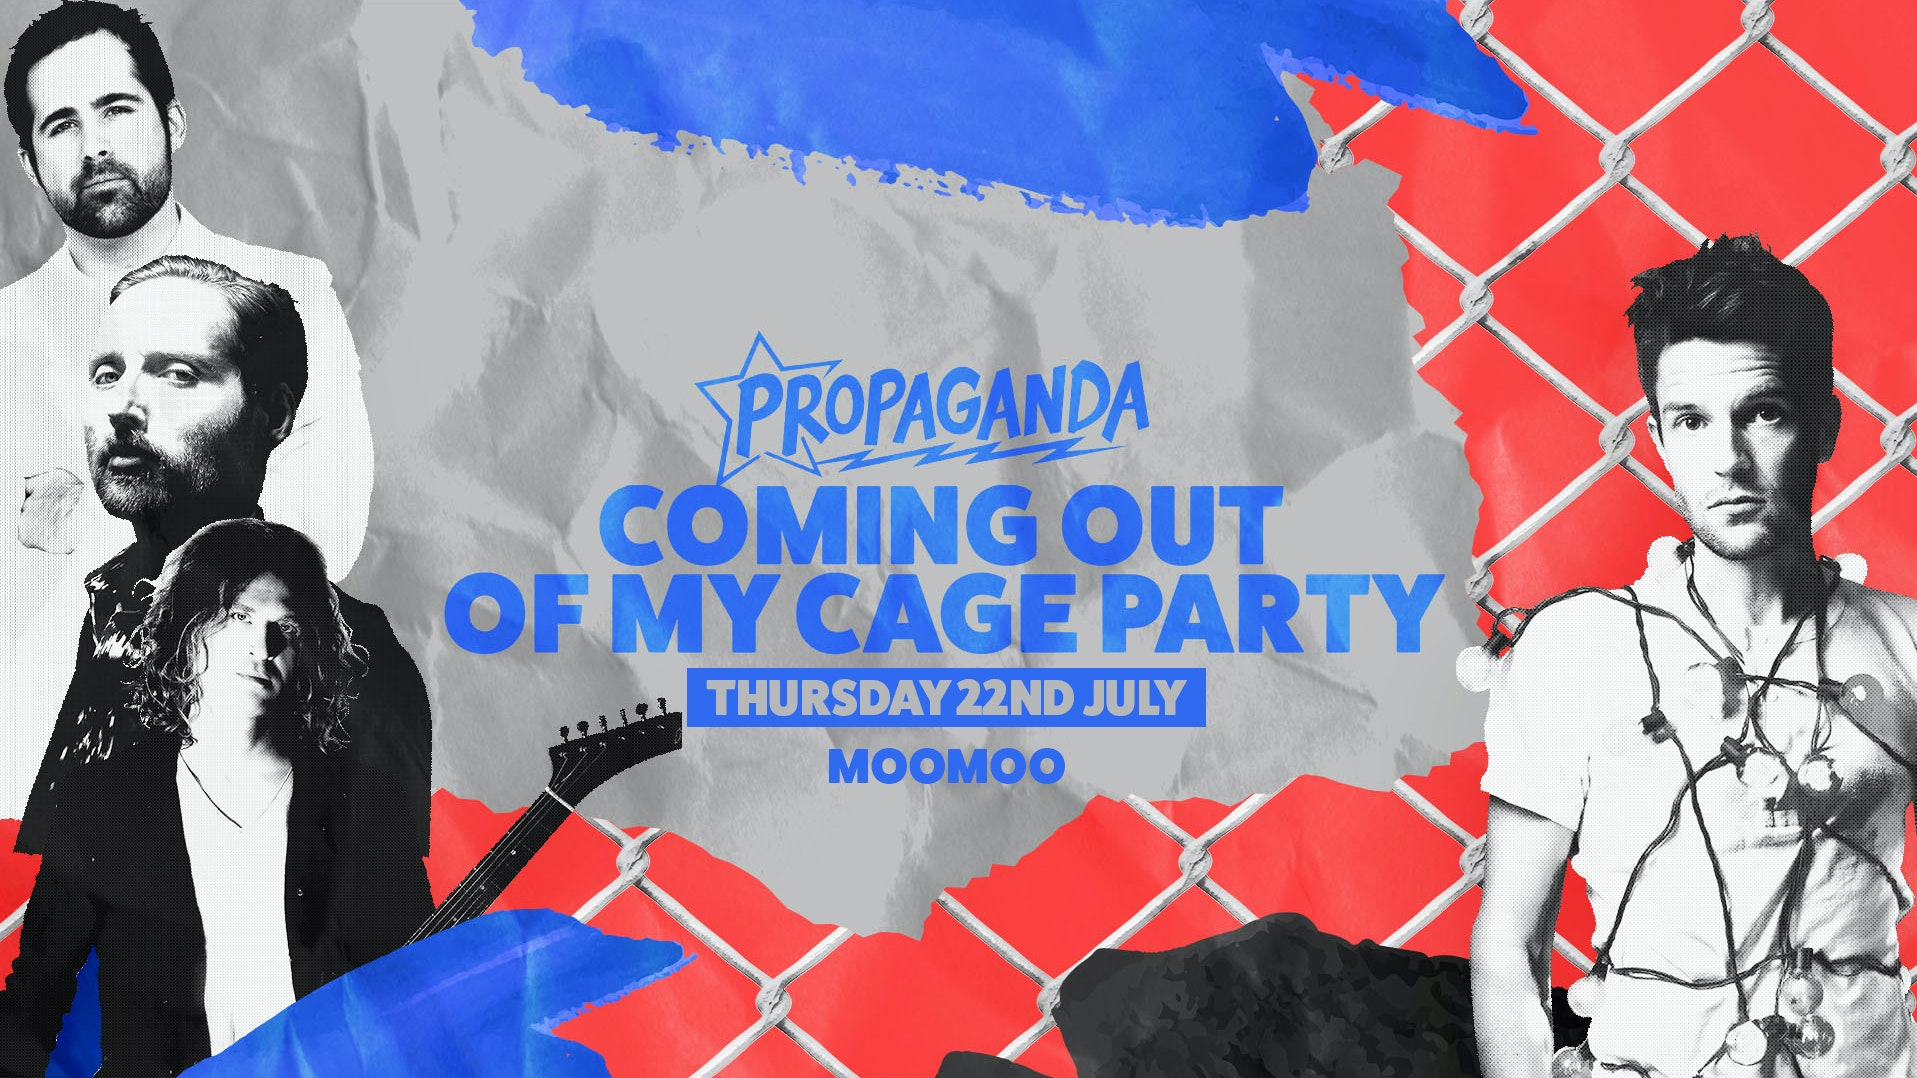 Propaganda – Coming Out of My Cage Party!